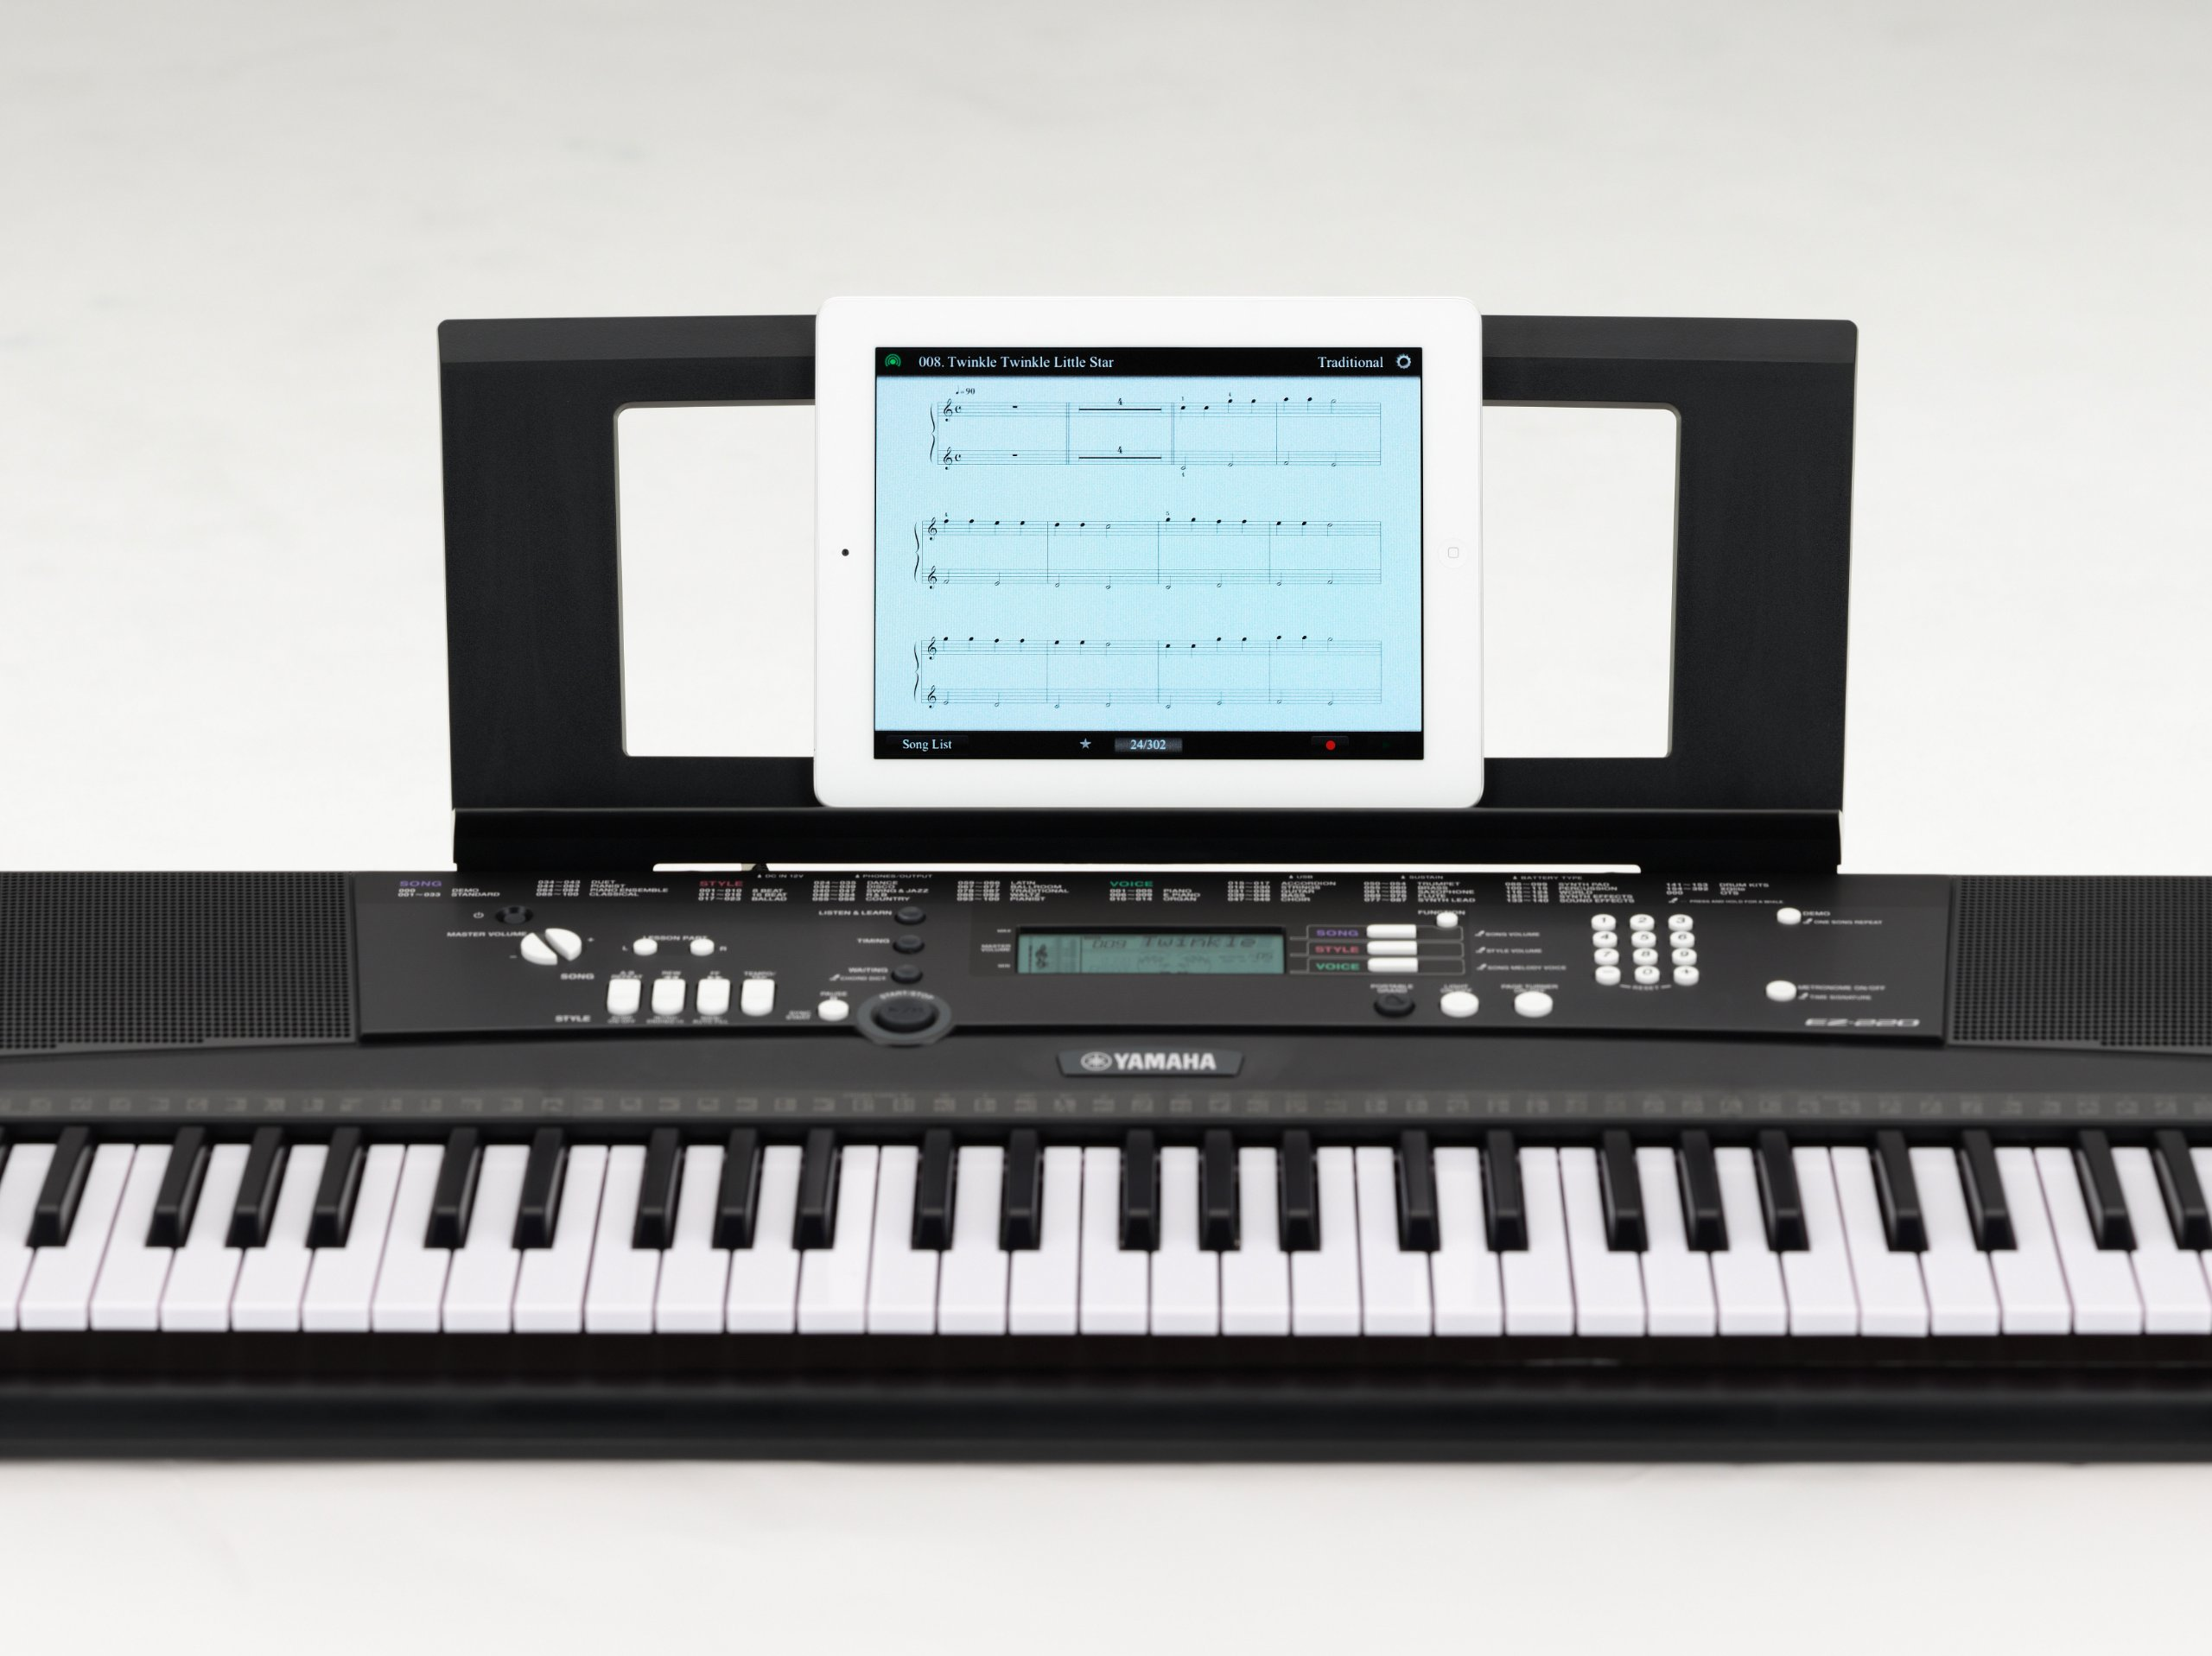 Yamaha EZ220 Keyboard with Lighted Keys - Includes X-Style Stand and Power Adapter